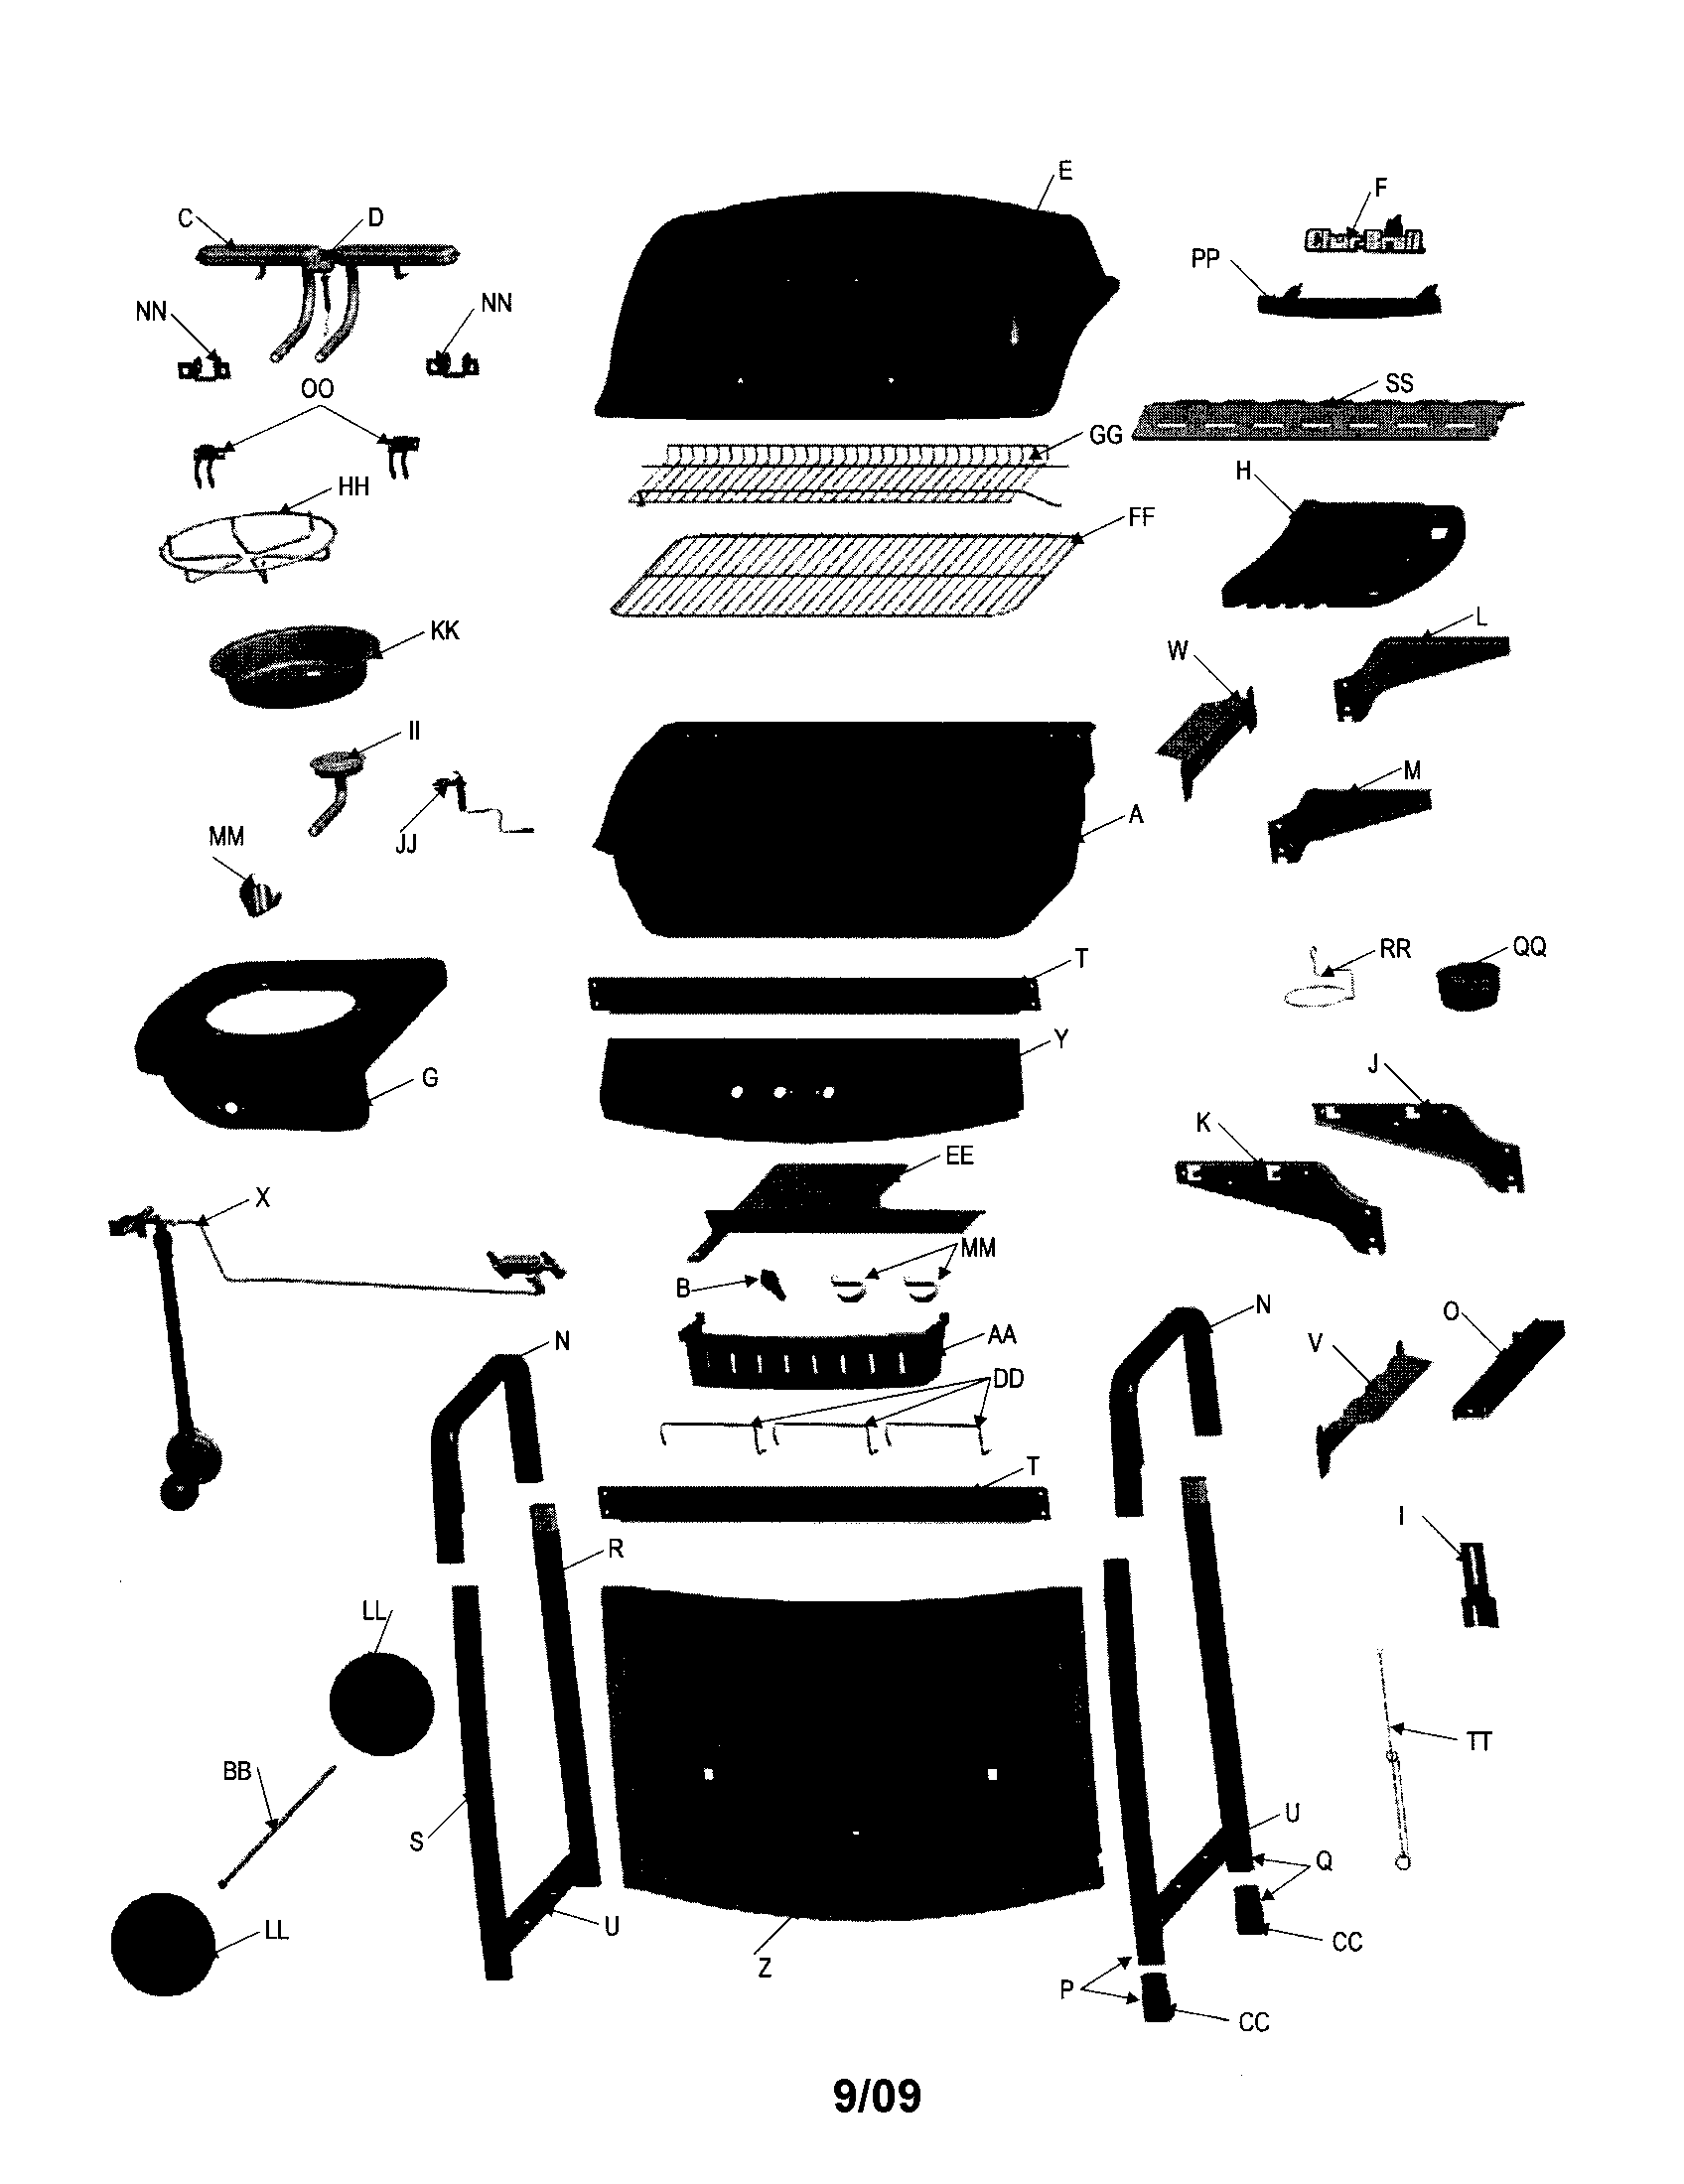 Gas Grill Ignitor Schematic. charbroil igniter wiring